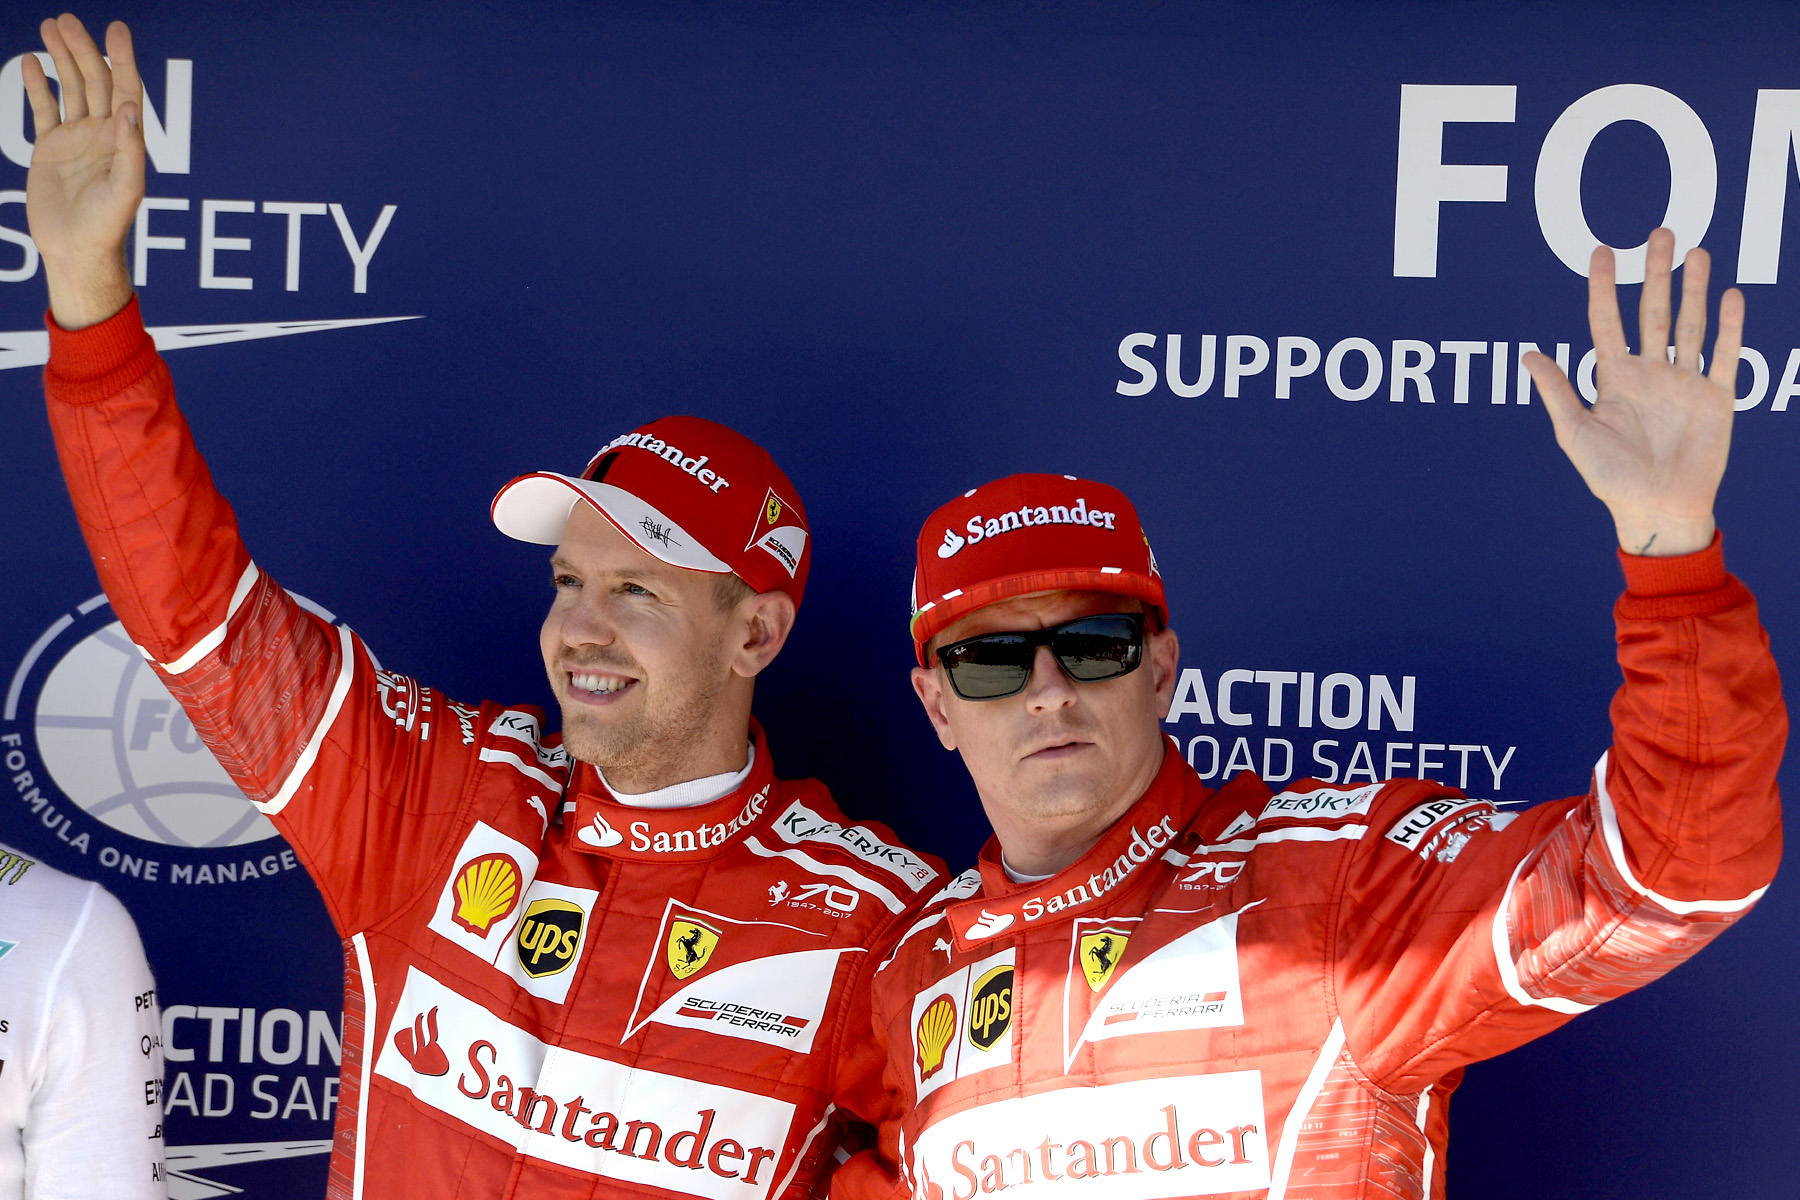 Sebastian Vettel and Kimi Raikkonen at the 2017 Hungarian Grand Prix.